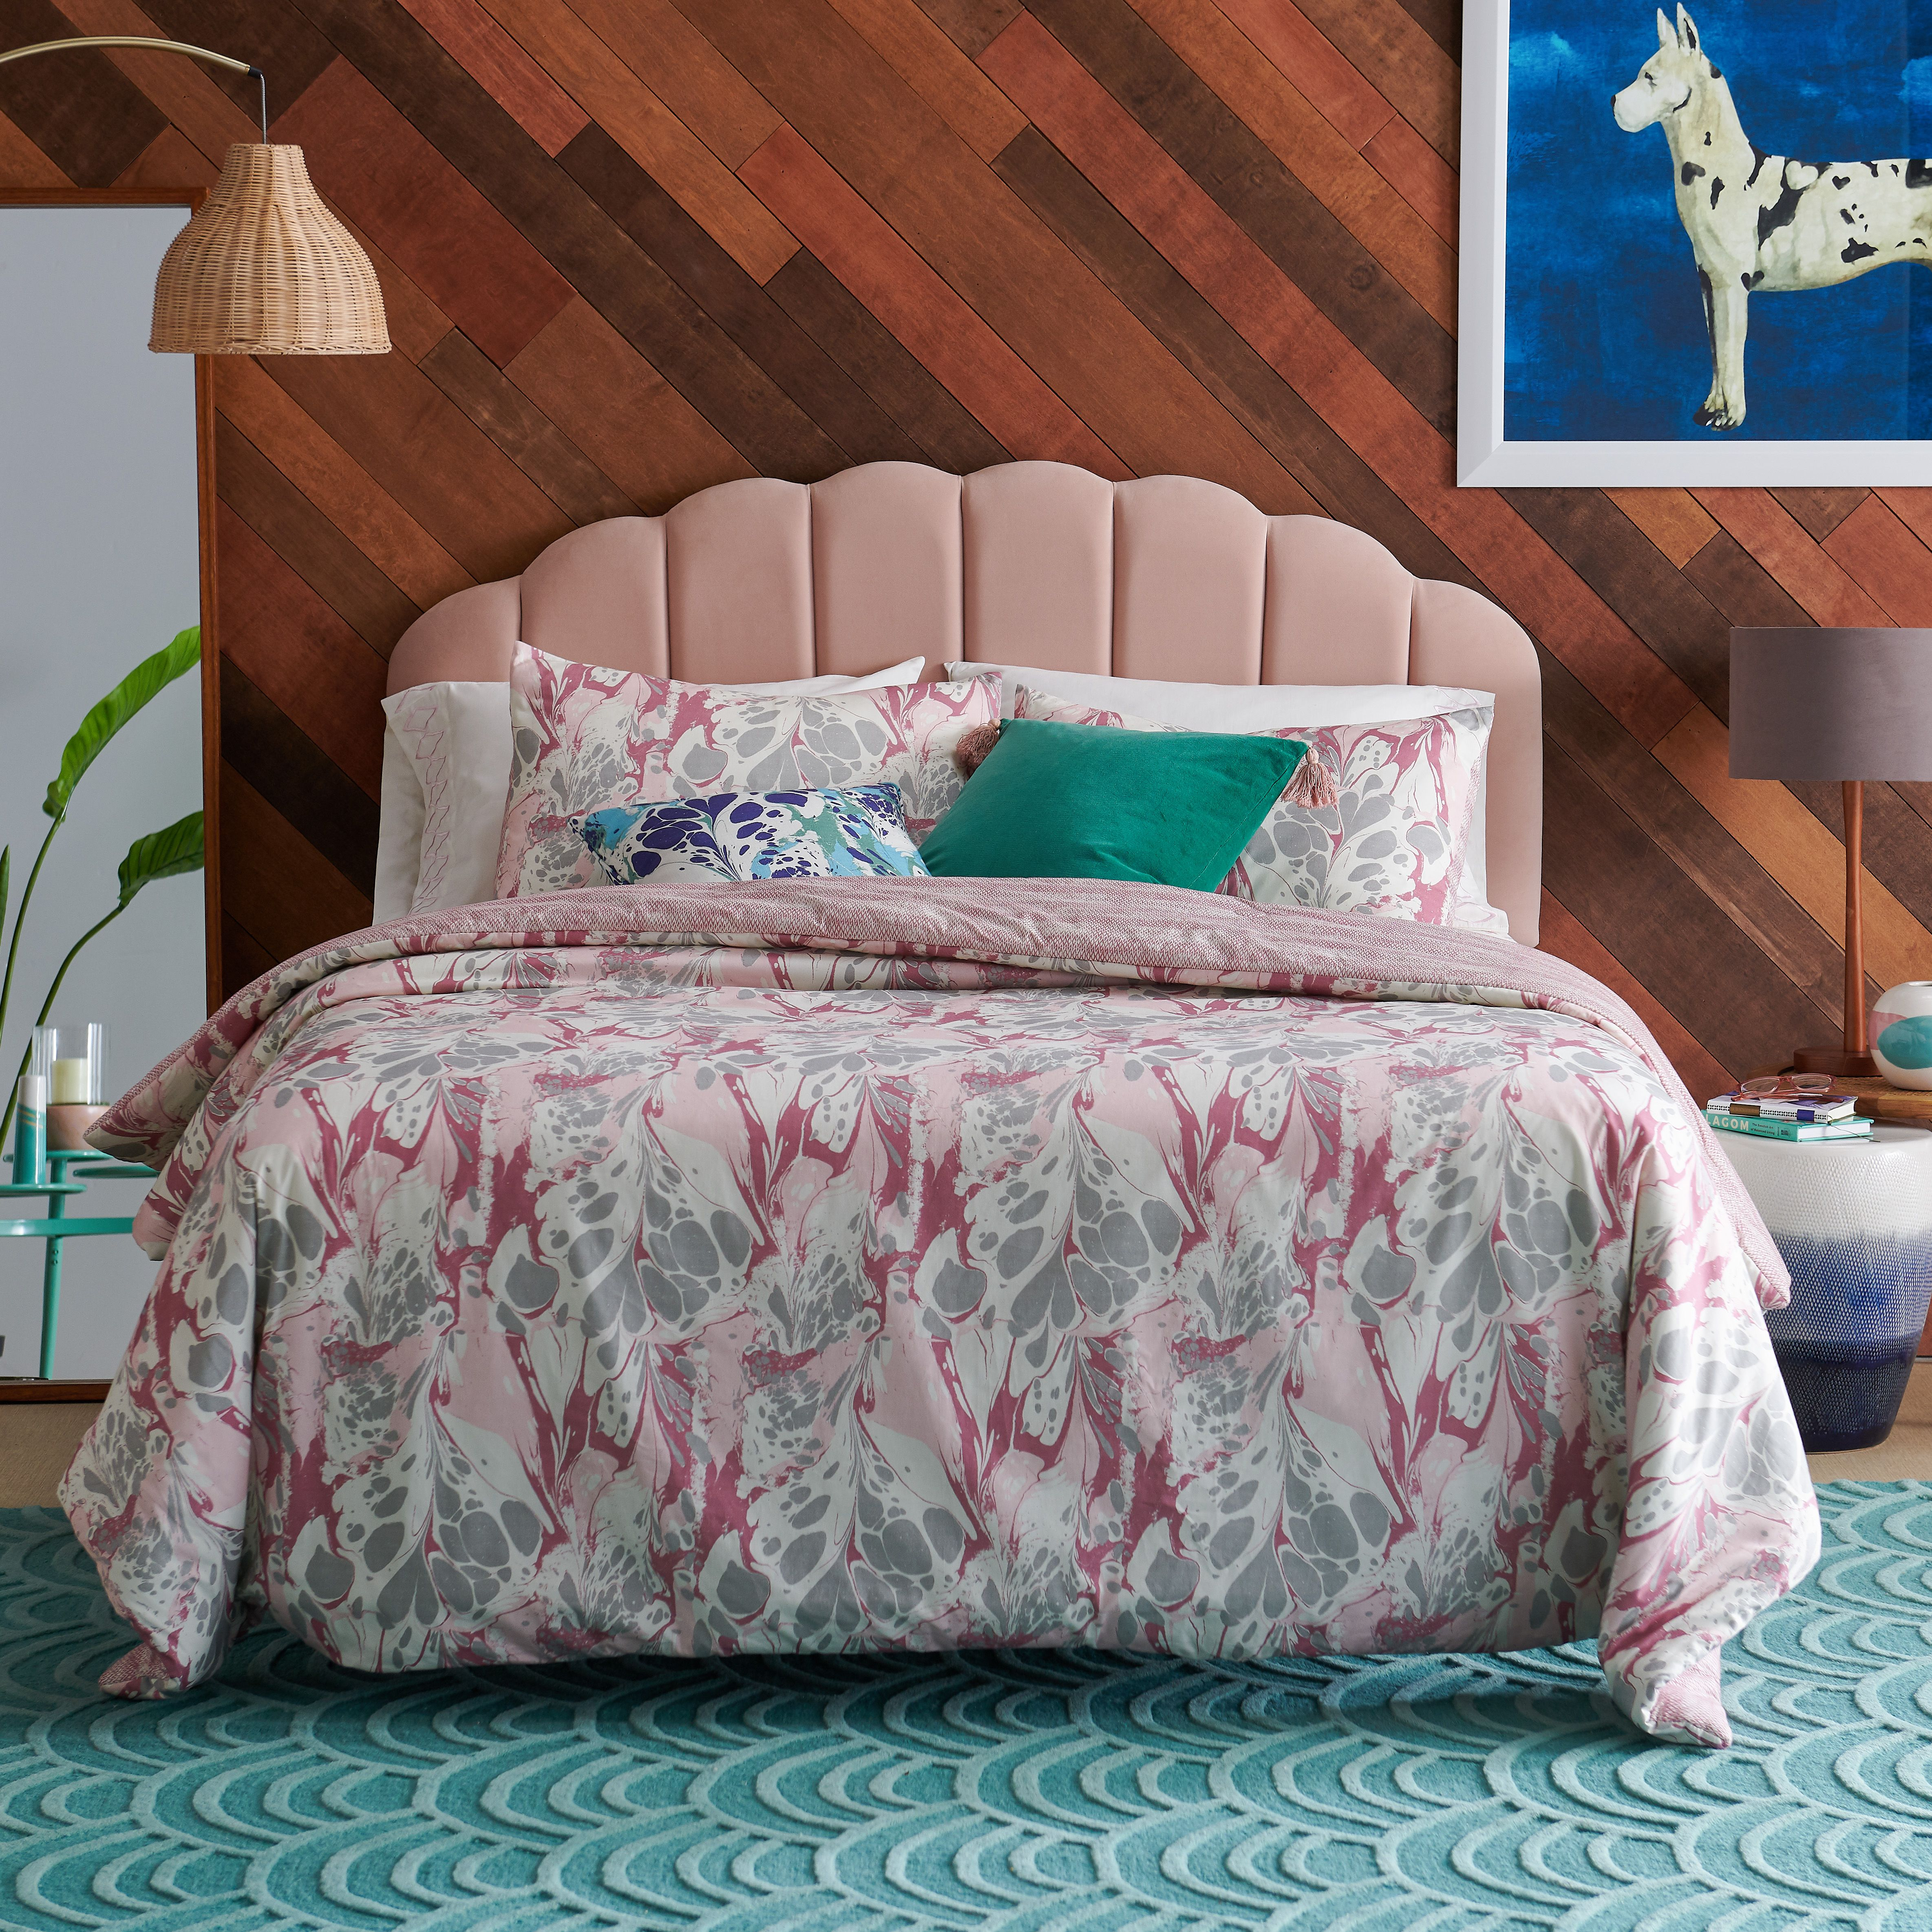 Pin By Darcy Joyce On Projects To Try In 2021 Comforter Sets Headboard Comforters